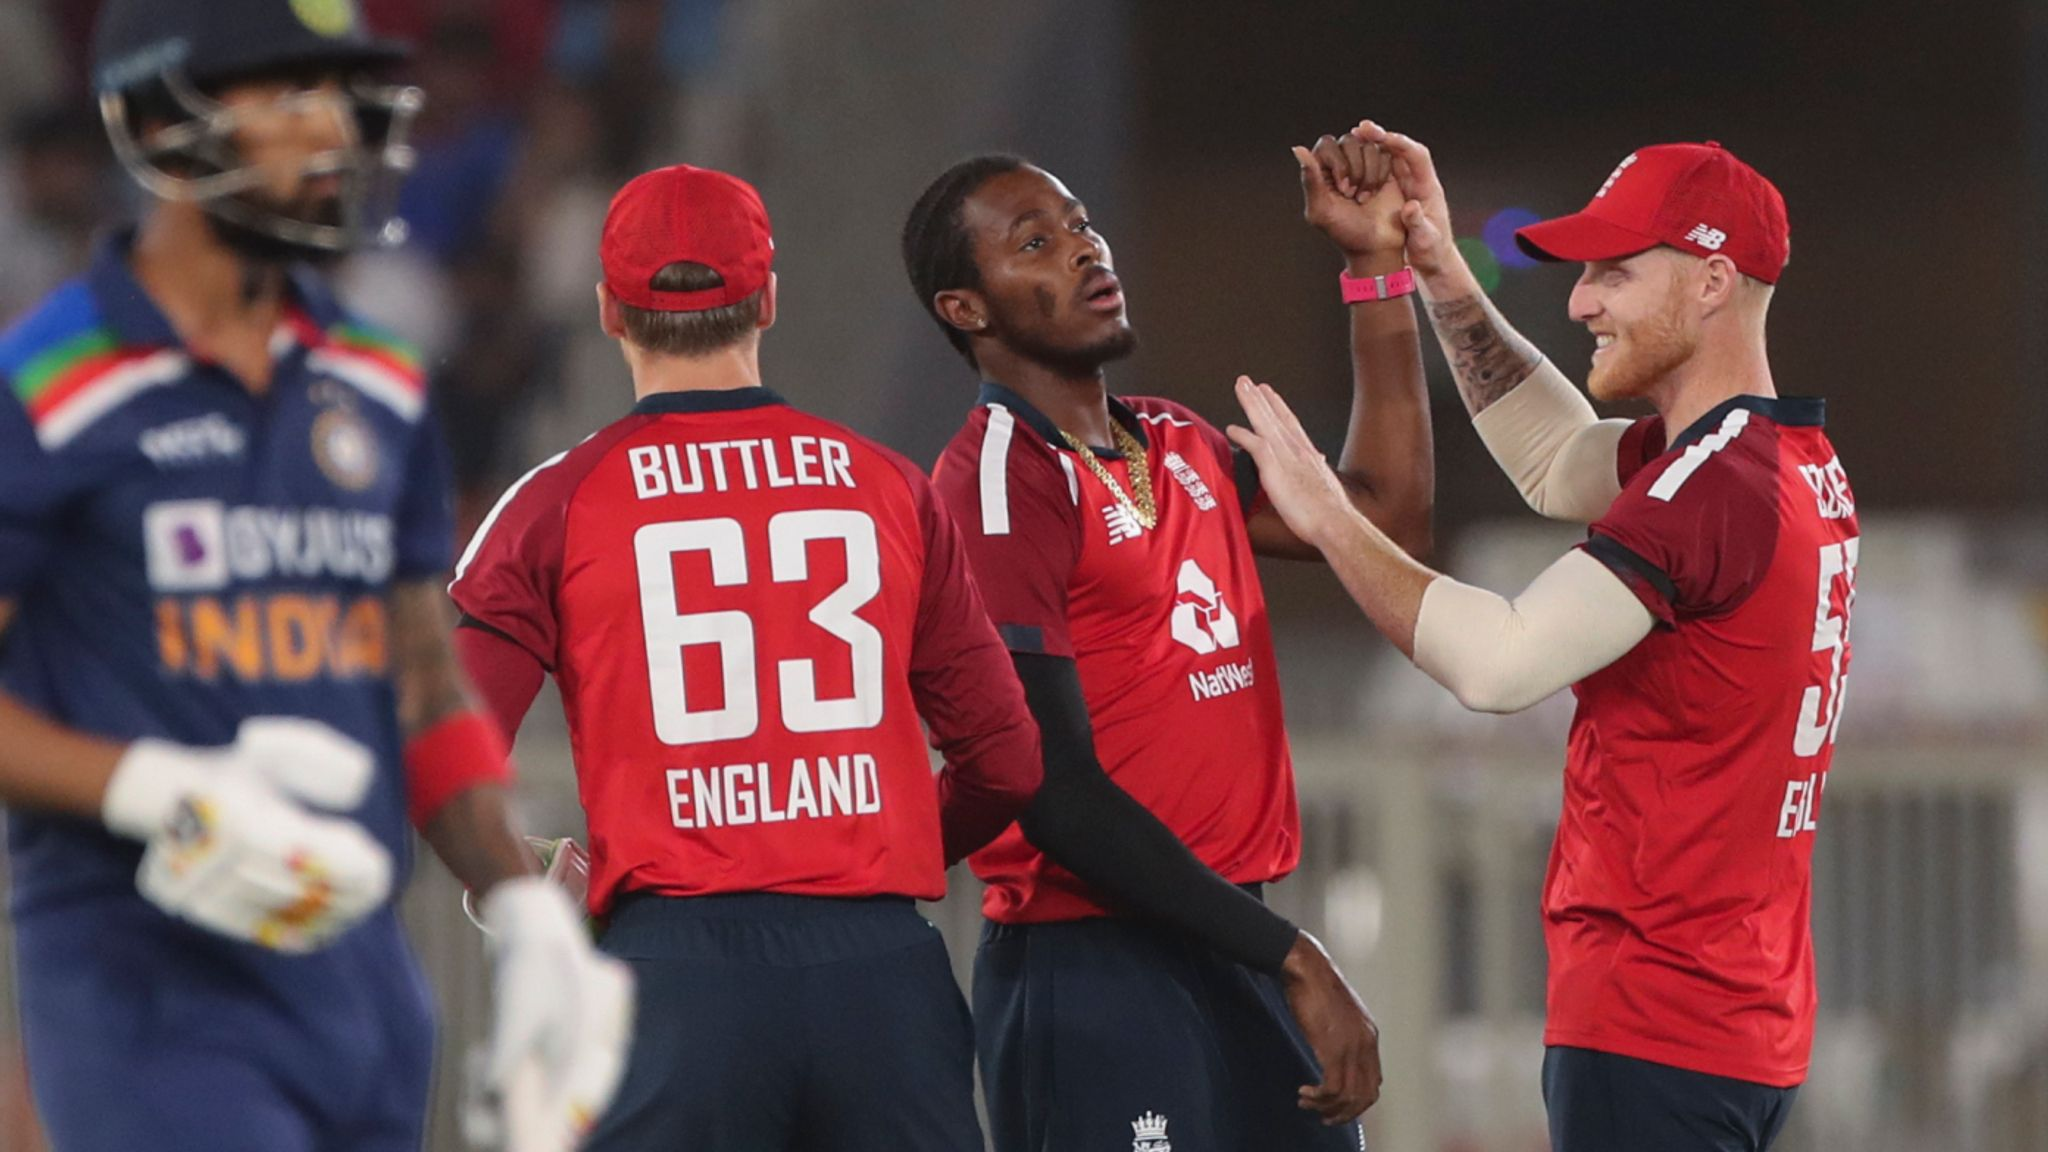 India vs England T20 series goes behind closed doors after spike in number of coronavirus cases   Cricket News   Sky Sports